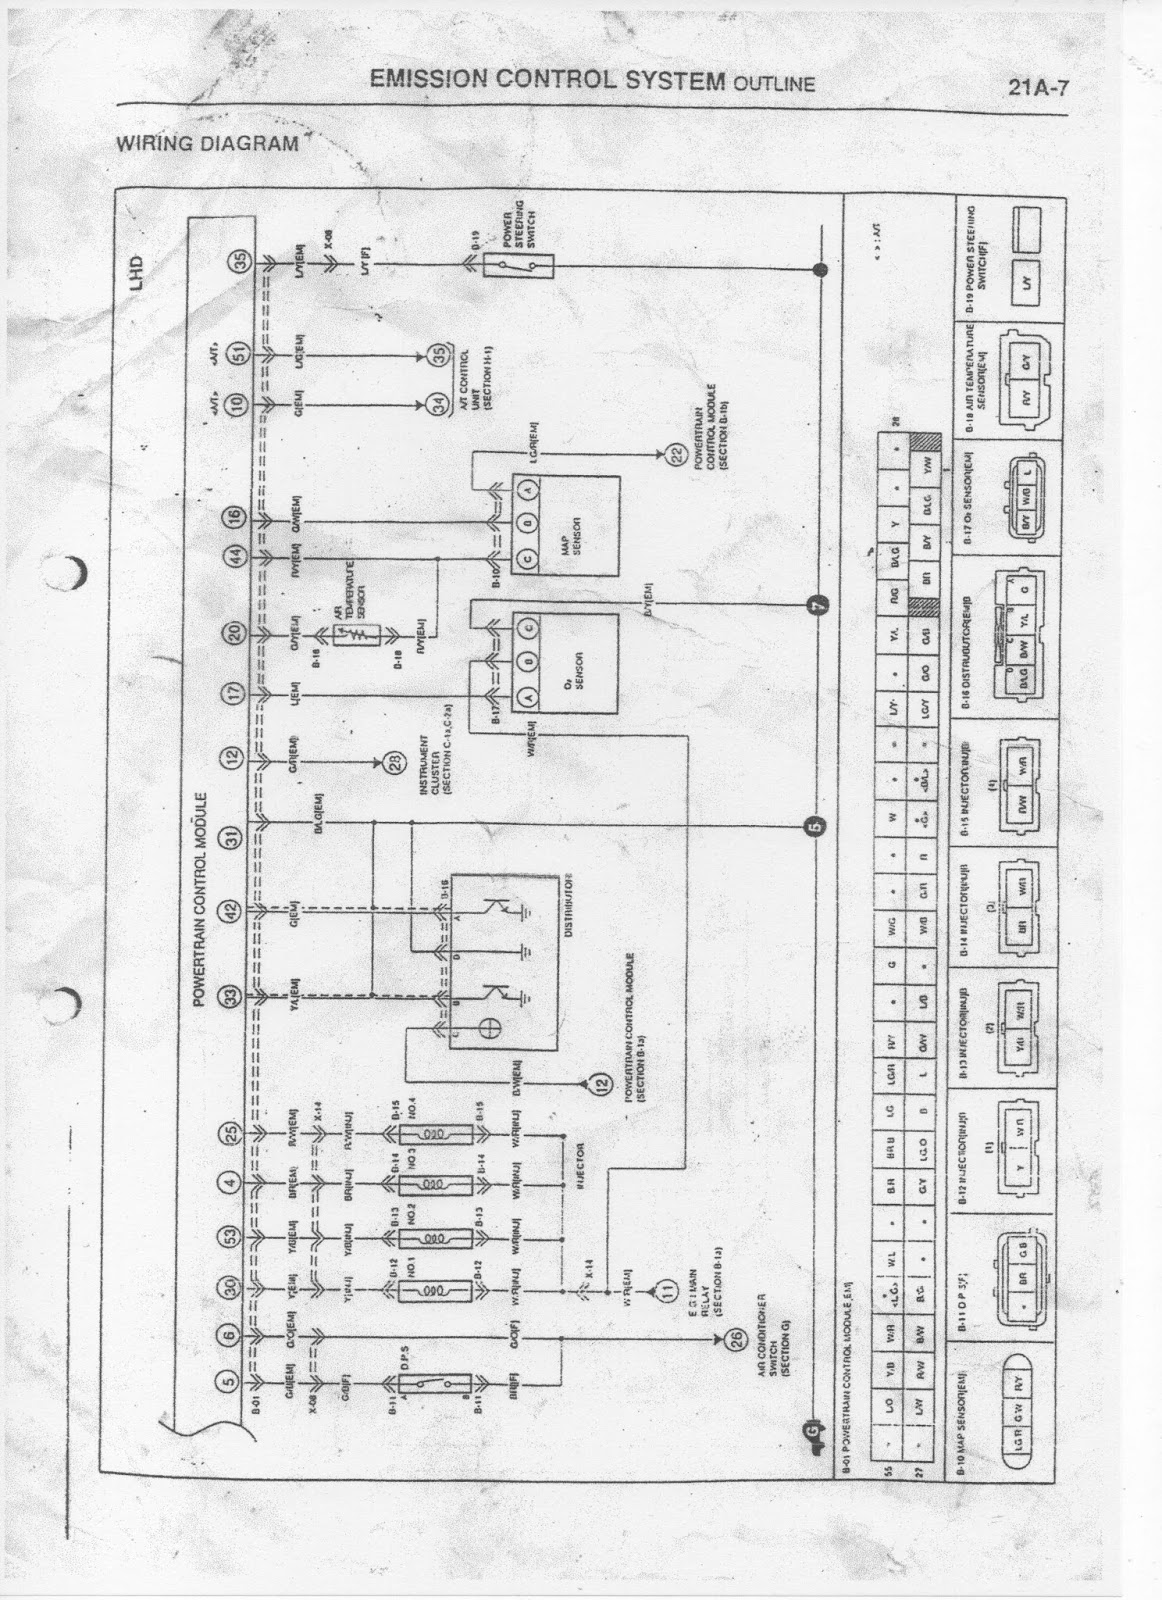 Kia Mentor Wiring Diagram List Of Schematic Circuit 2001 Sephia Fuse Box Master Mobil Efi Rh A Carbuilder Blogspot Com